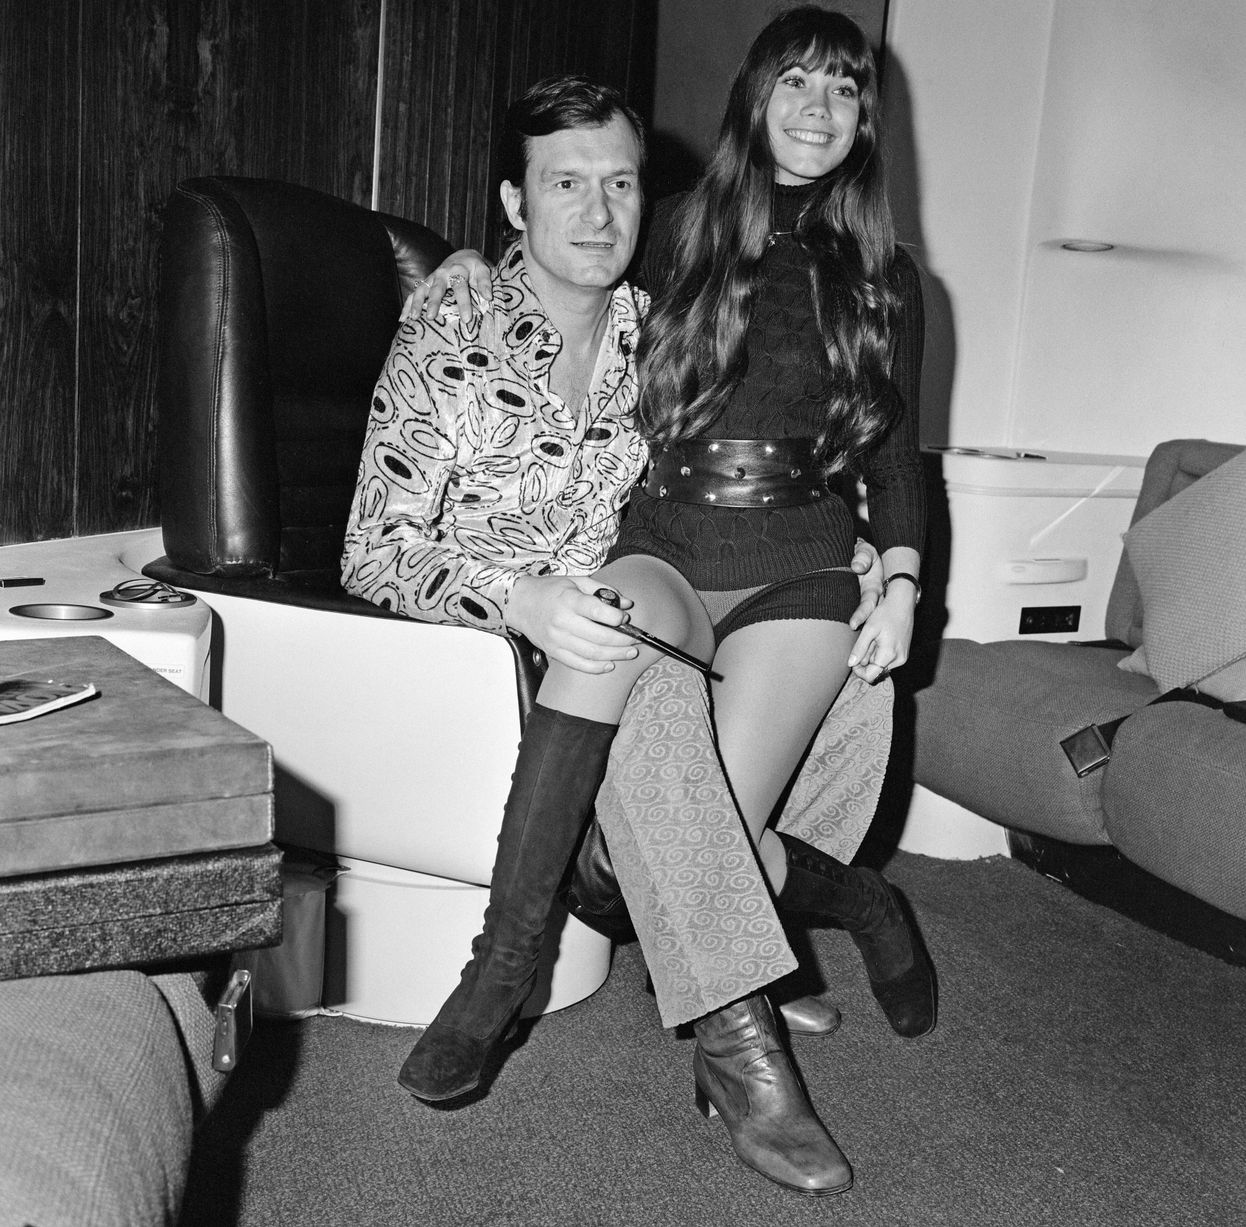 Everette hatcher iii the daily hatch page 10 20th february 1971 hef and barbi on his private jethefner settled down somewhat in 2012 at age 86 when he took crystal harris who was 60 years younger fandeluxe Gallery